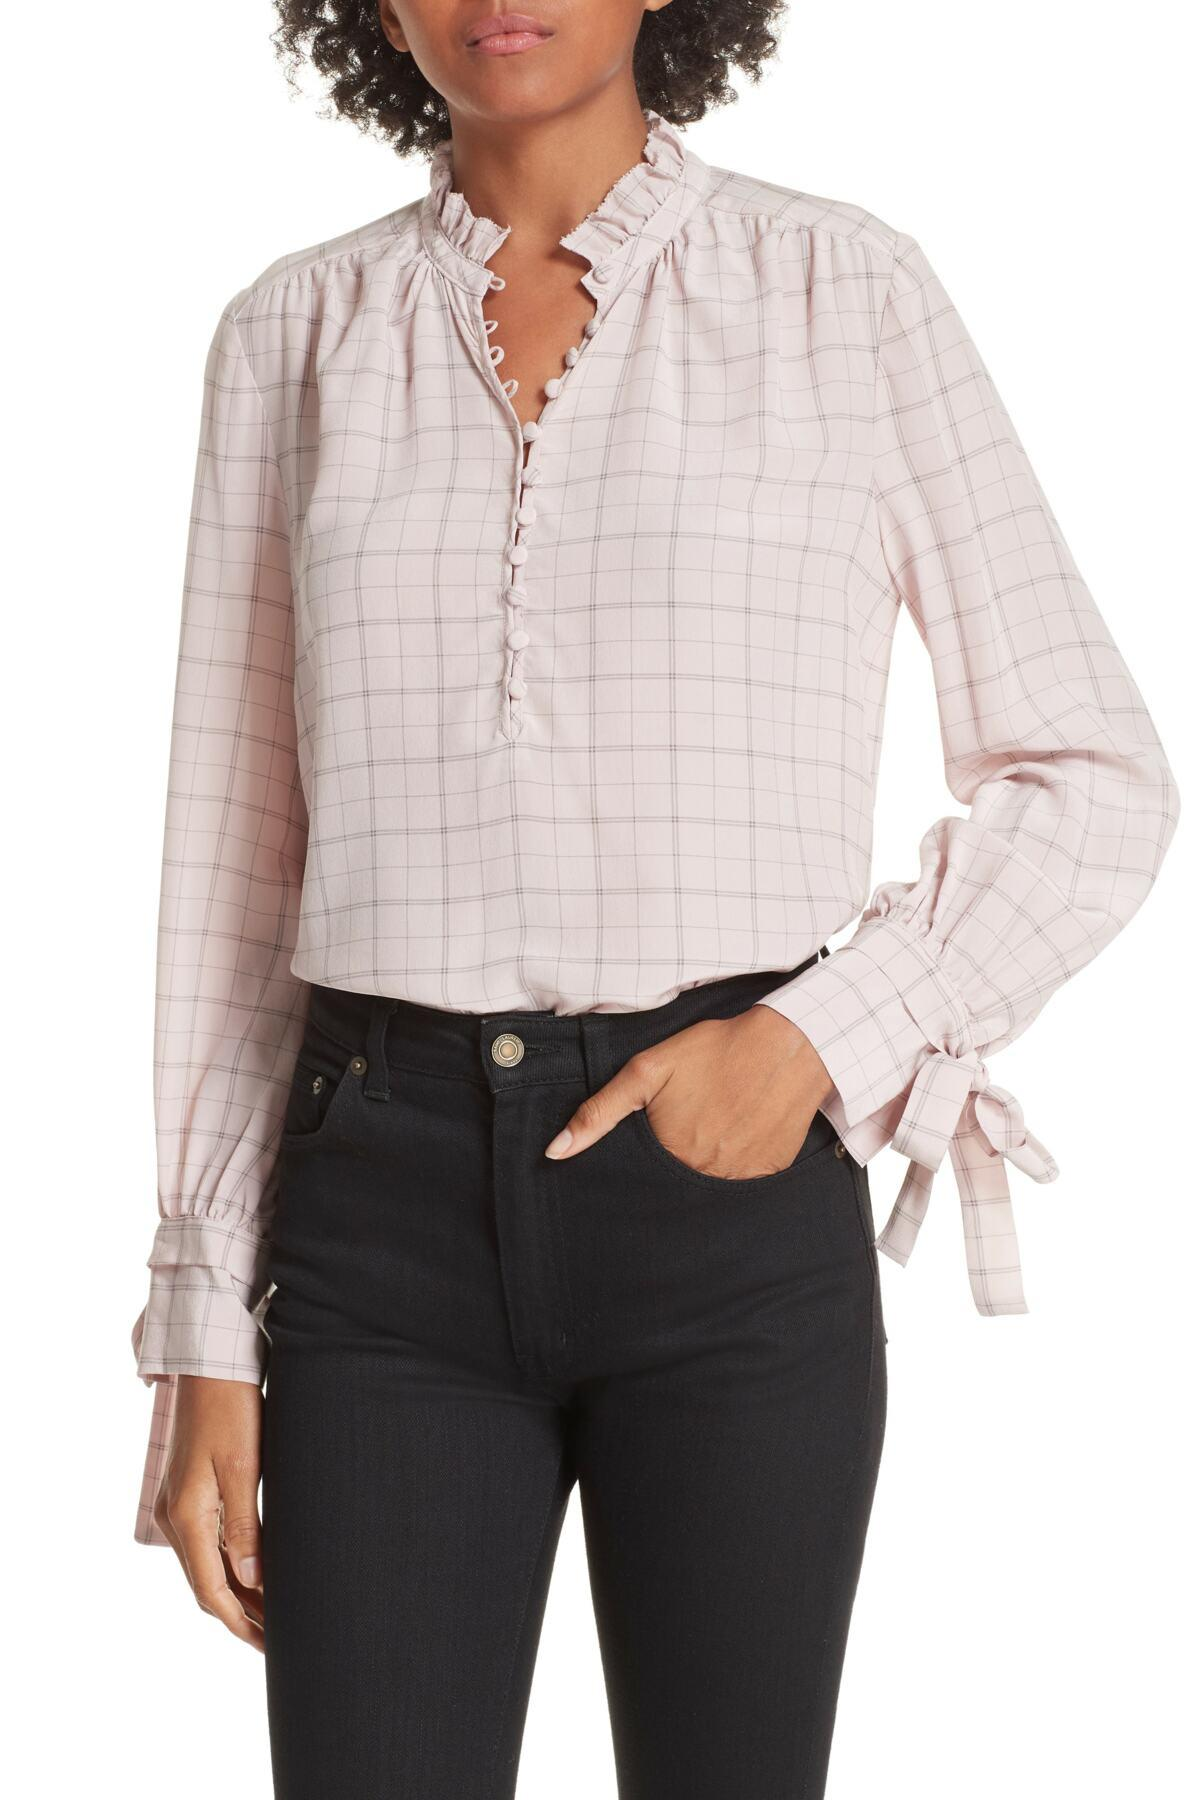 709c8f5d6e5774 Lyst - Rebecca Taylor Plaid Ruffle Silk Blouse in Pink - Save ...